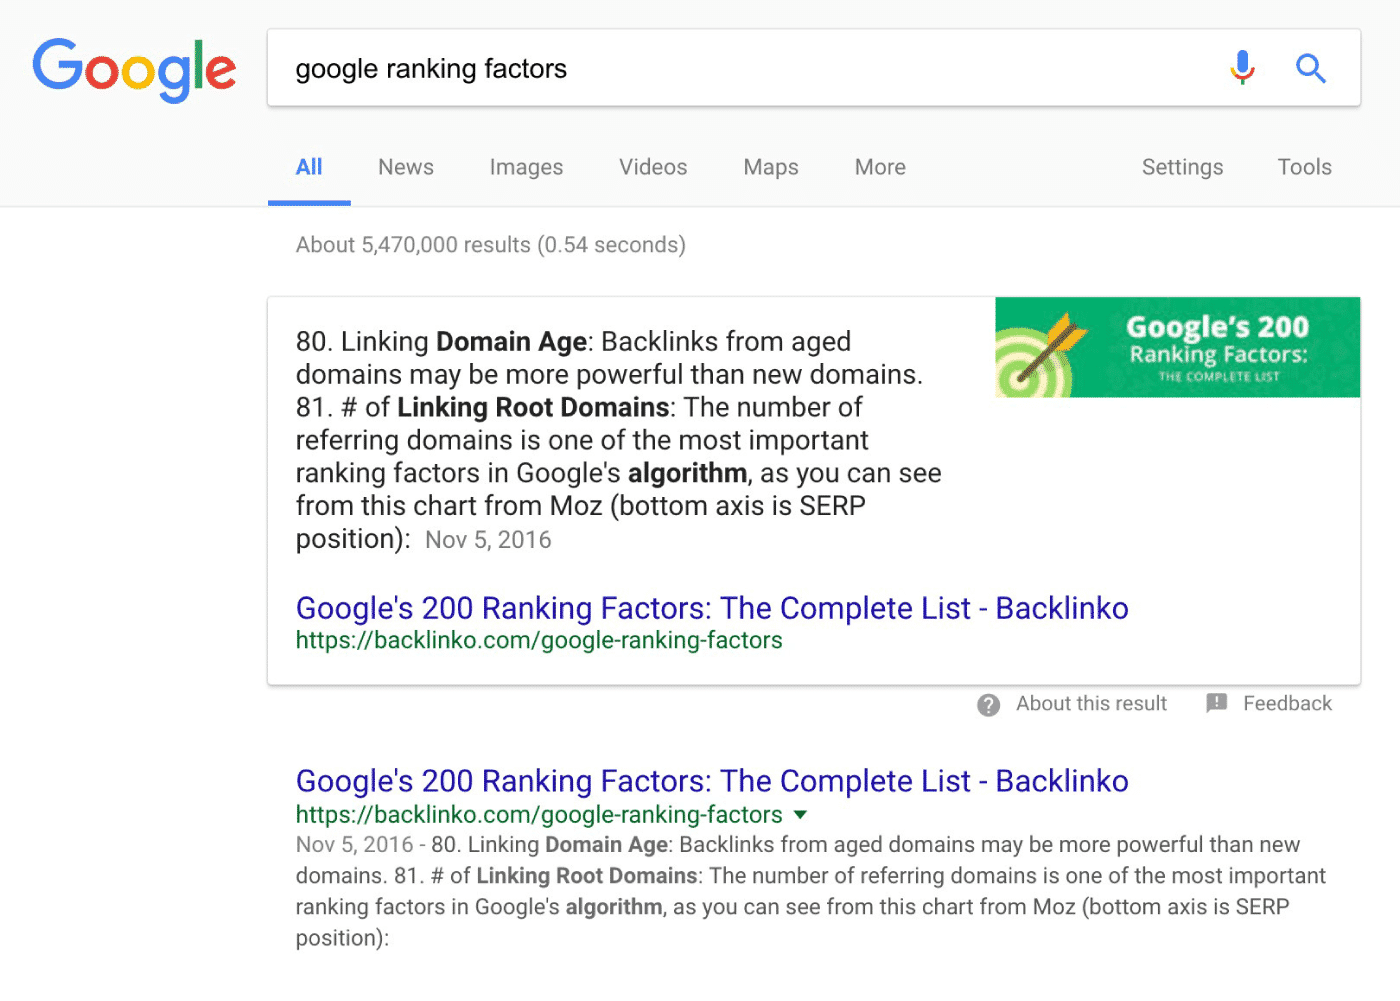 ۶_۲_google-ranking-factors